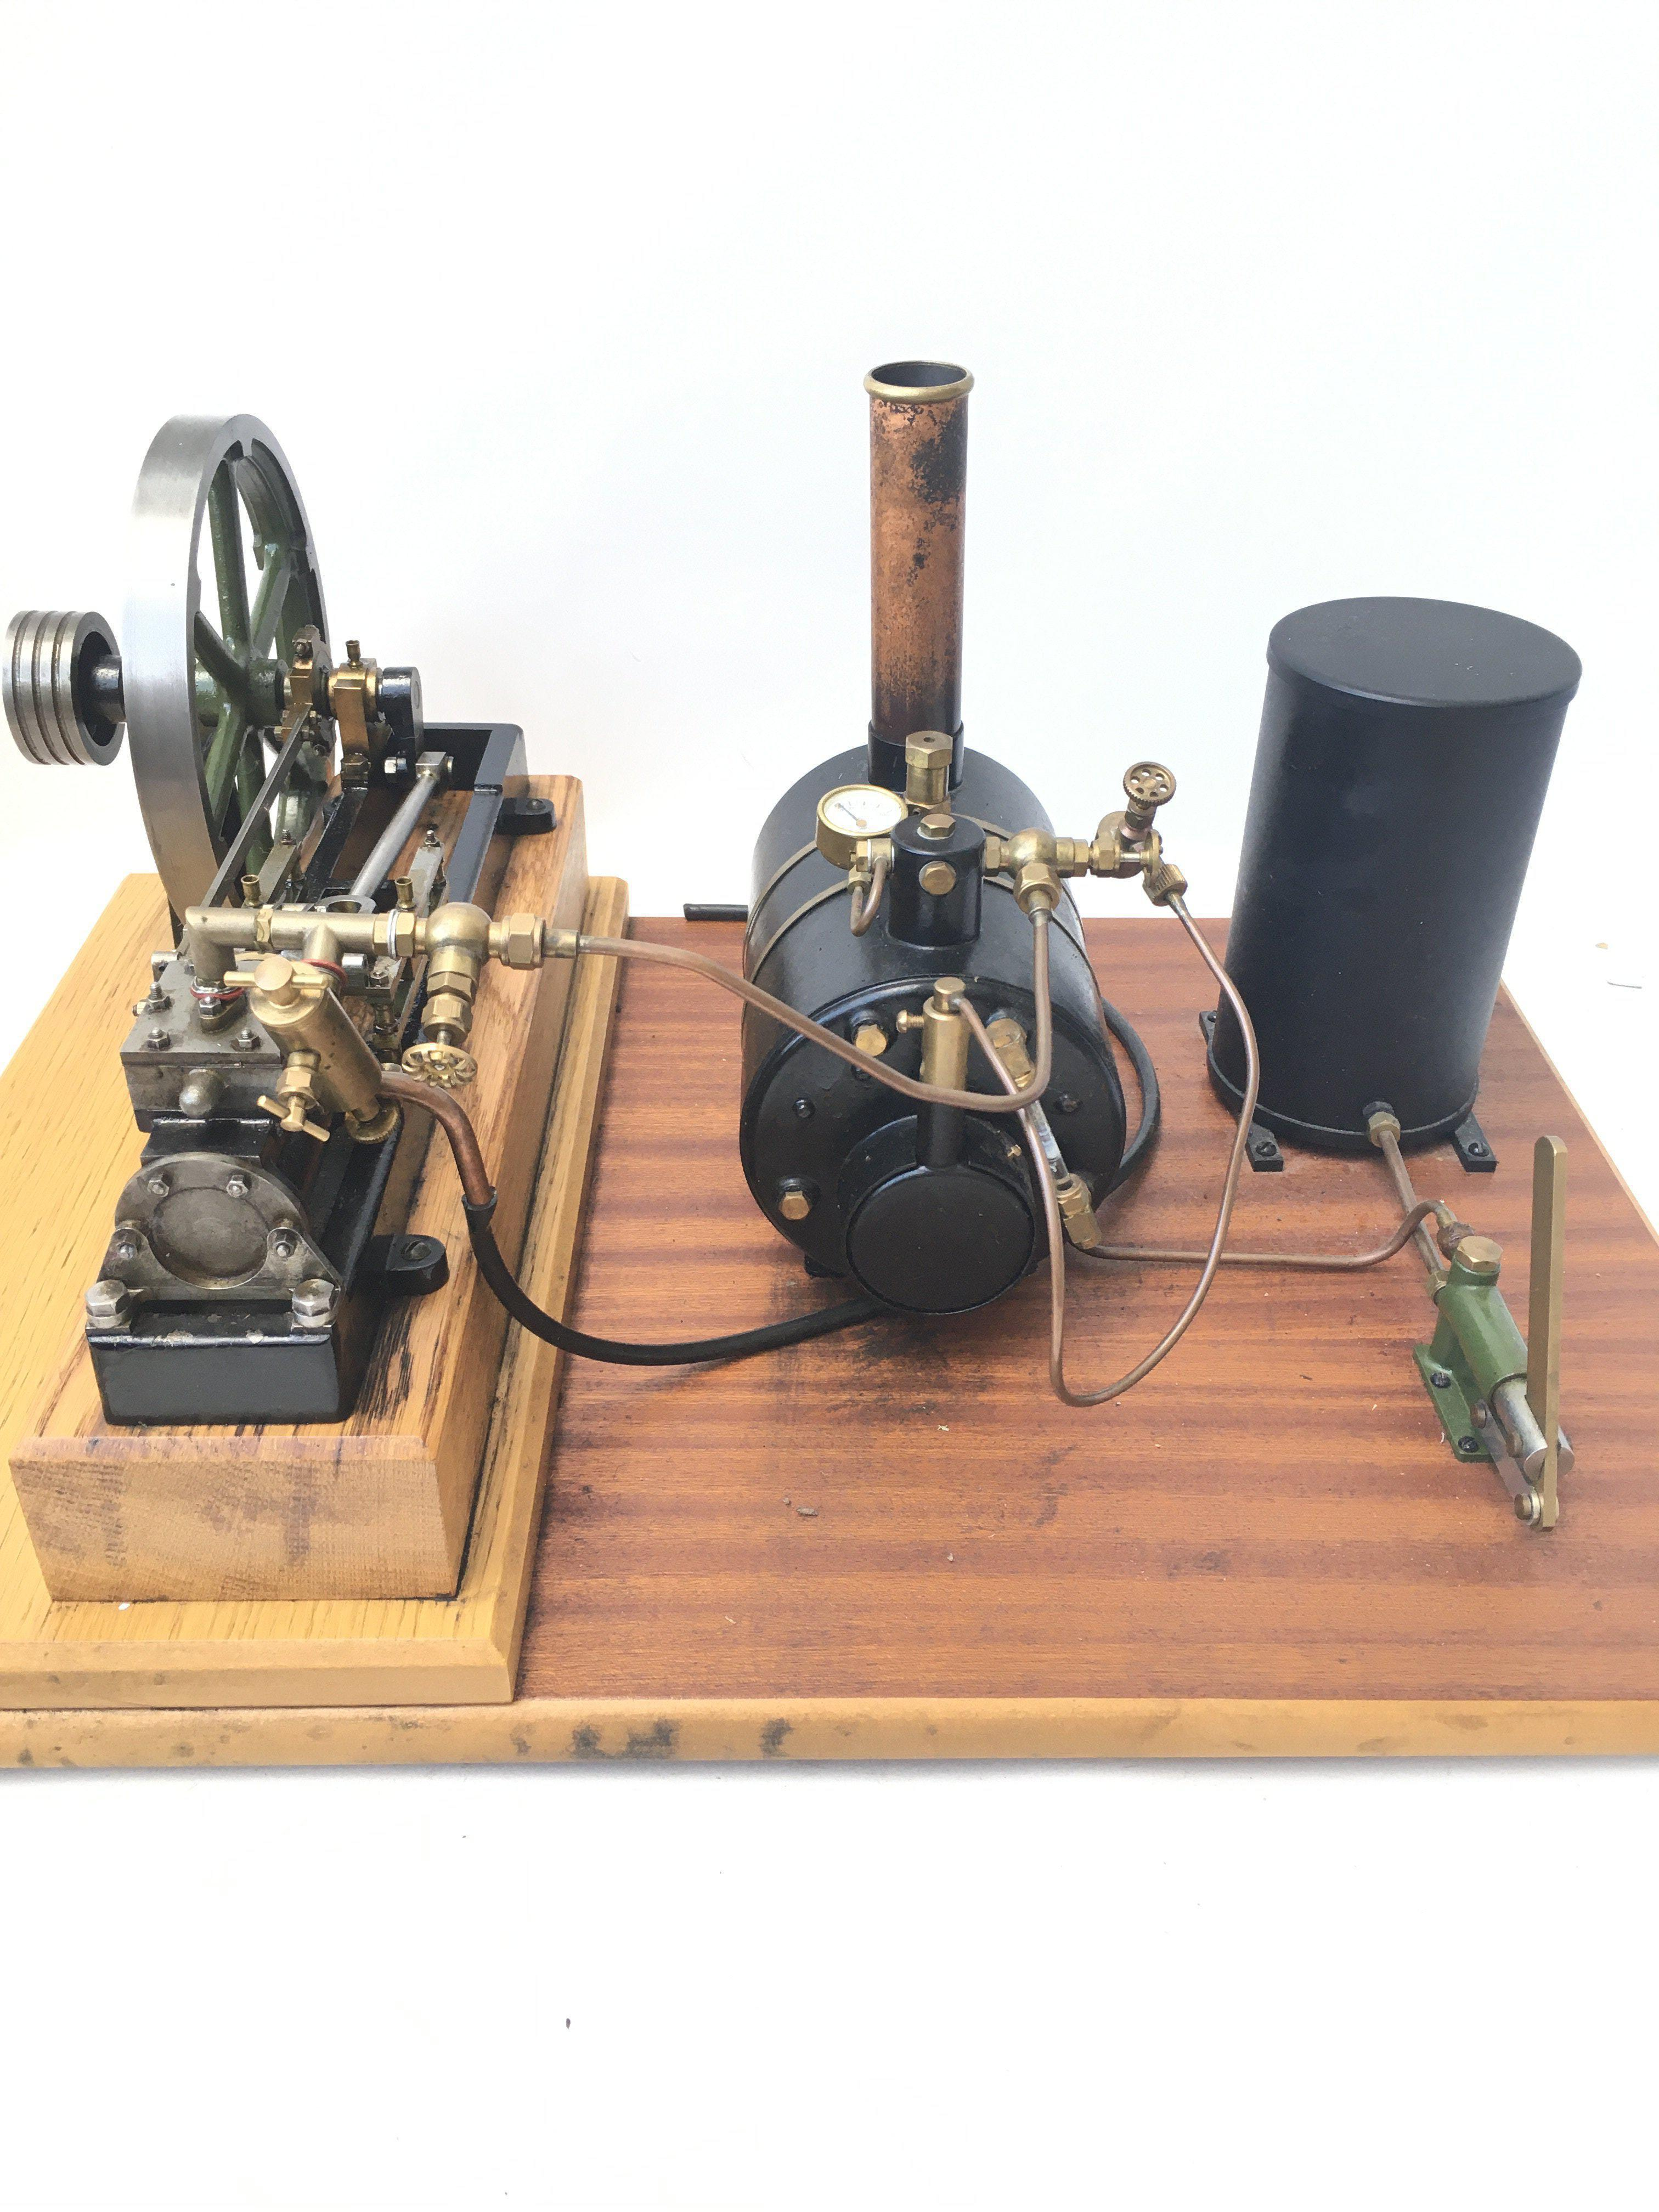 A Stuart Models Steam Engine including Feed Pump & Reservoir. Includes oils and certificate of